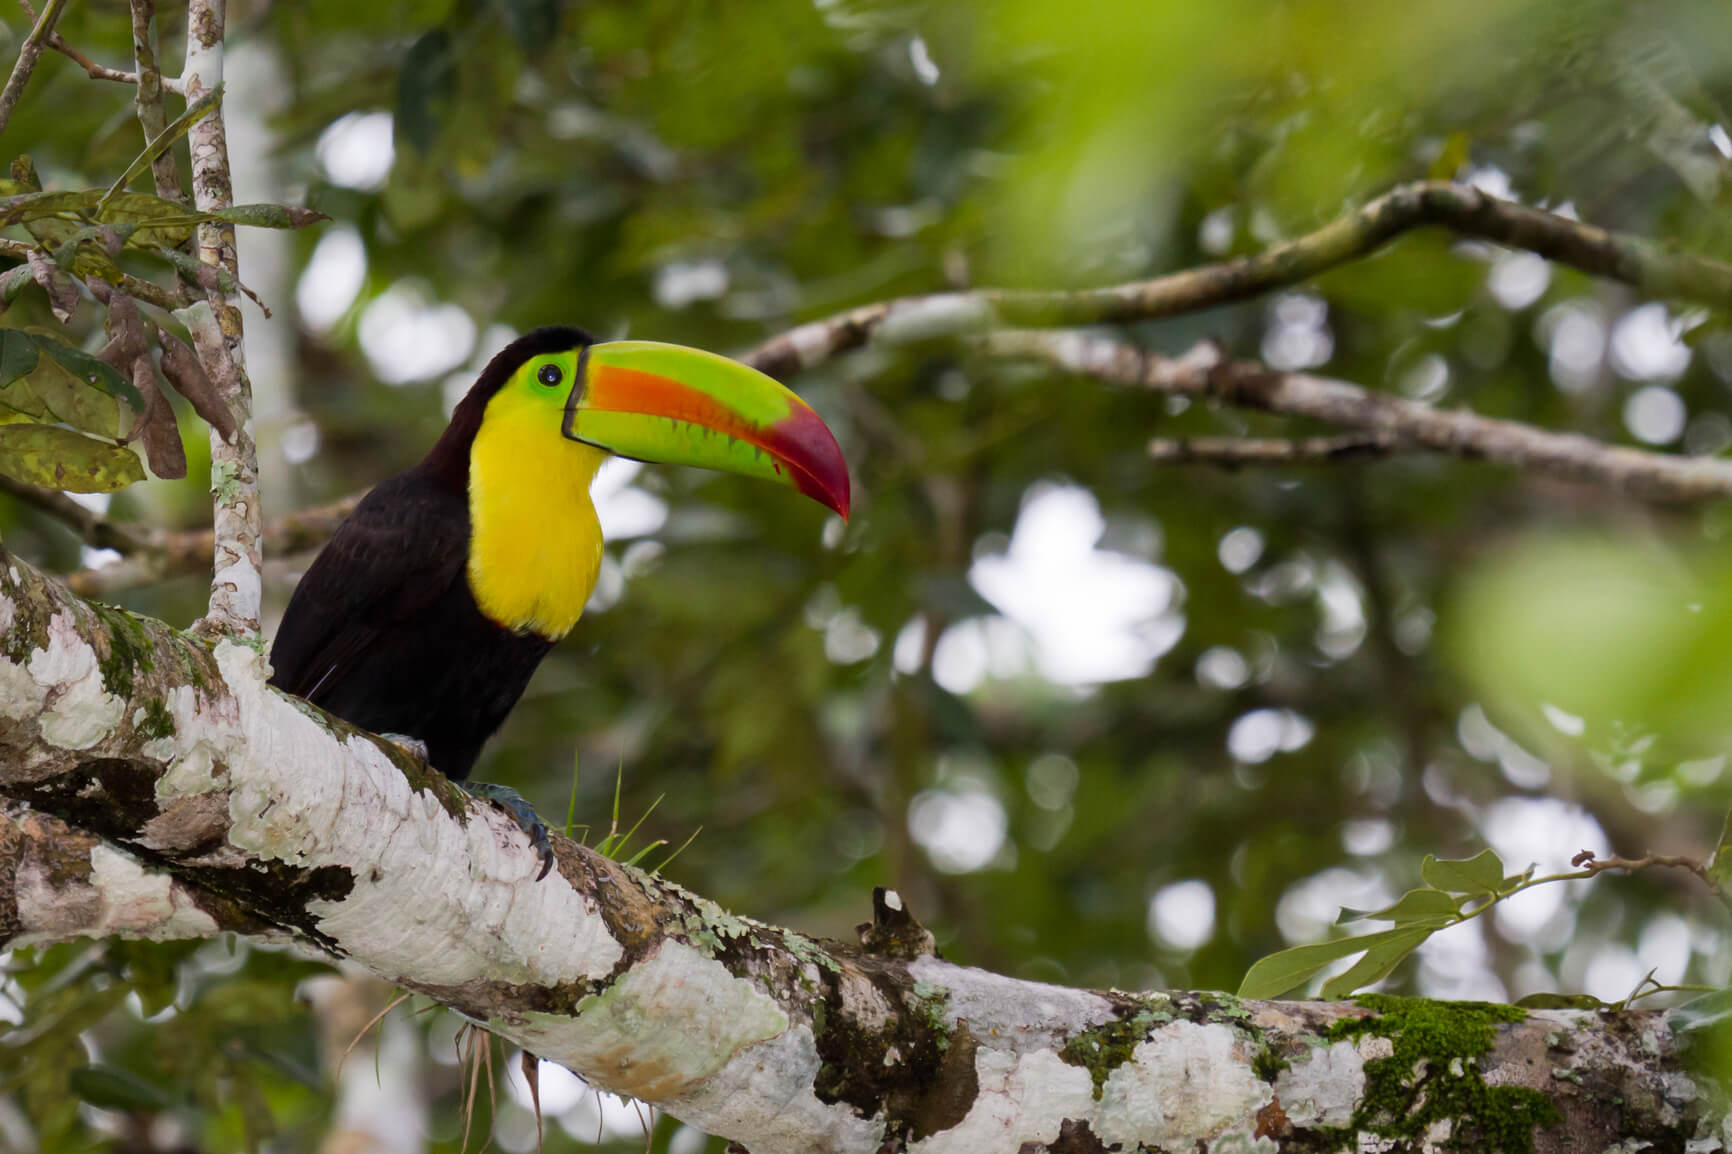 **PRICE DROP** Non-stop from London, UK to Liberia, Costa Rica for only £299 roundtrip